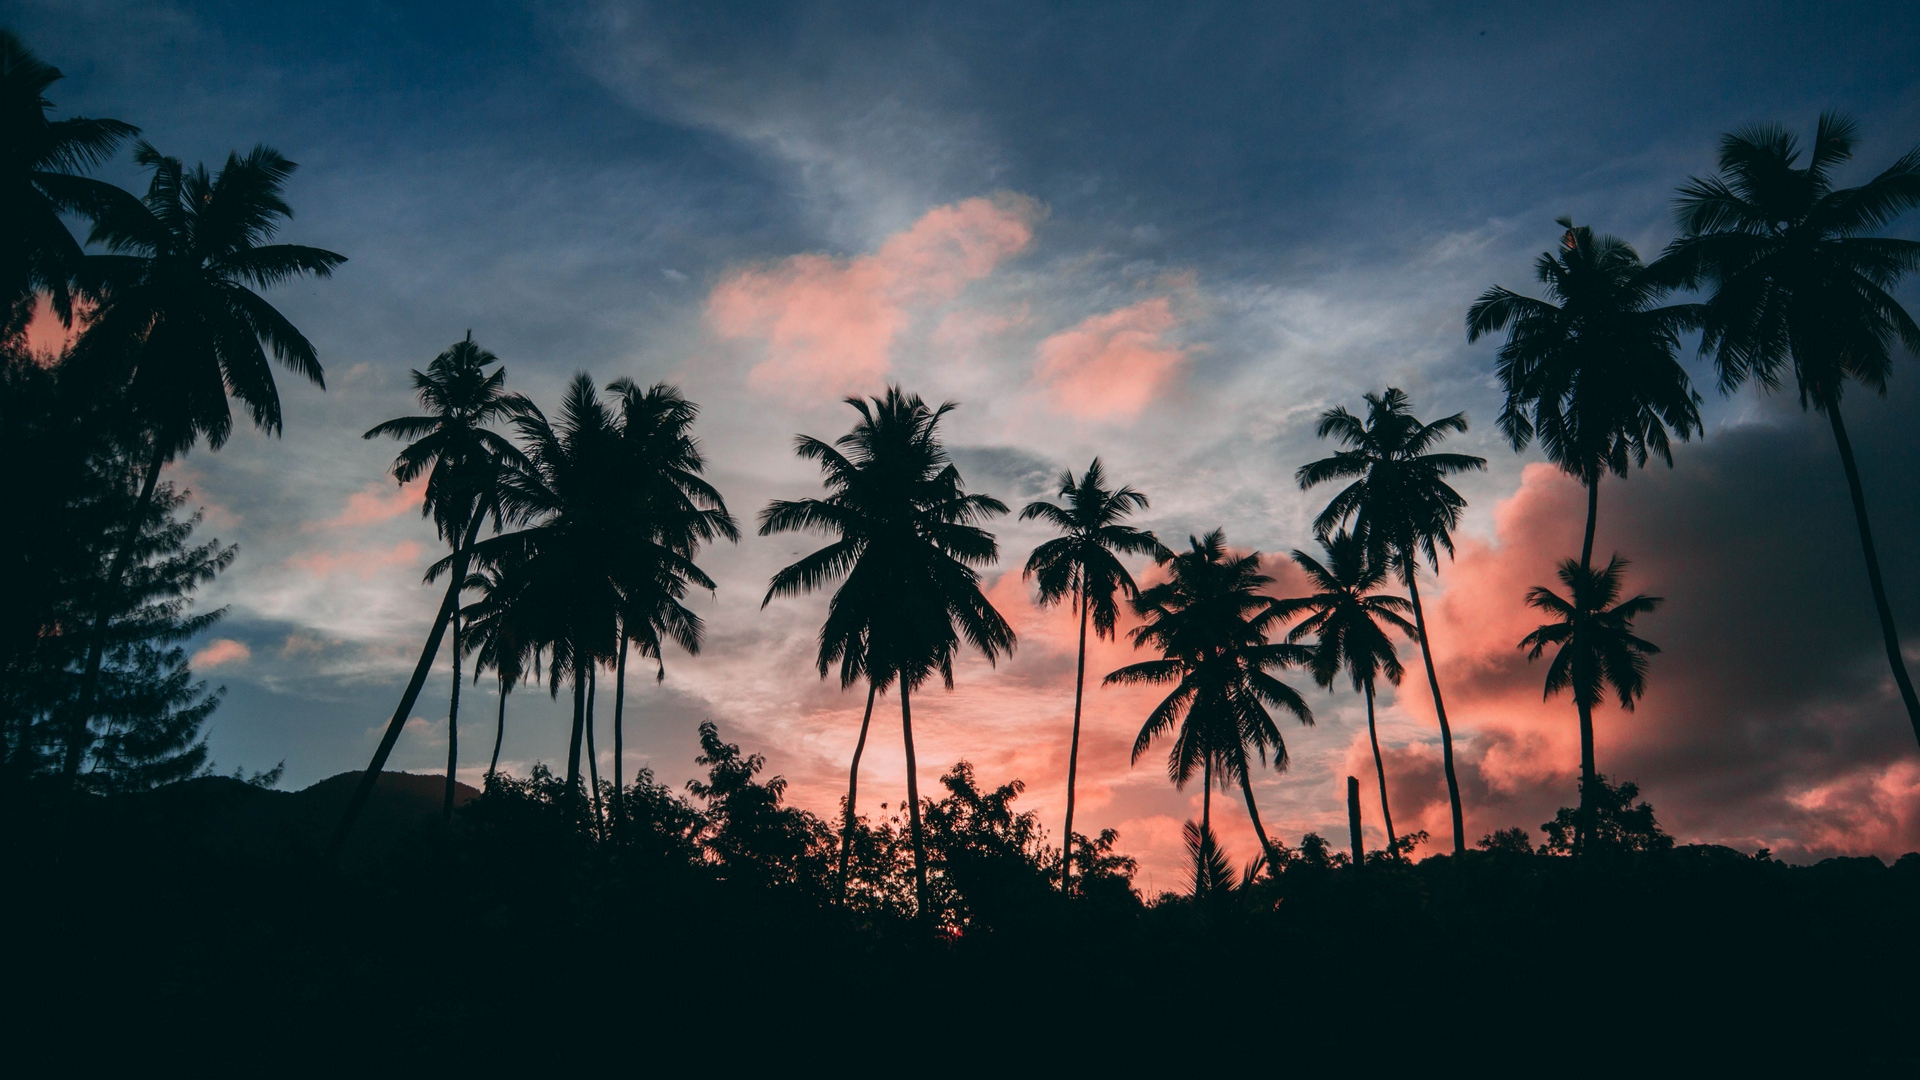 palms outlines sunset